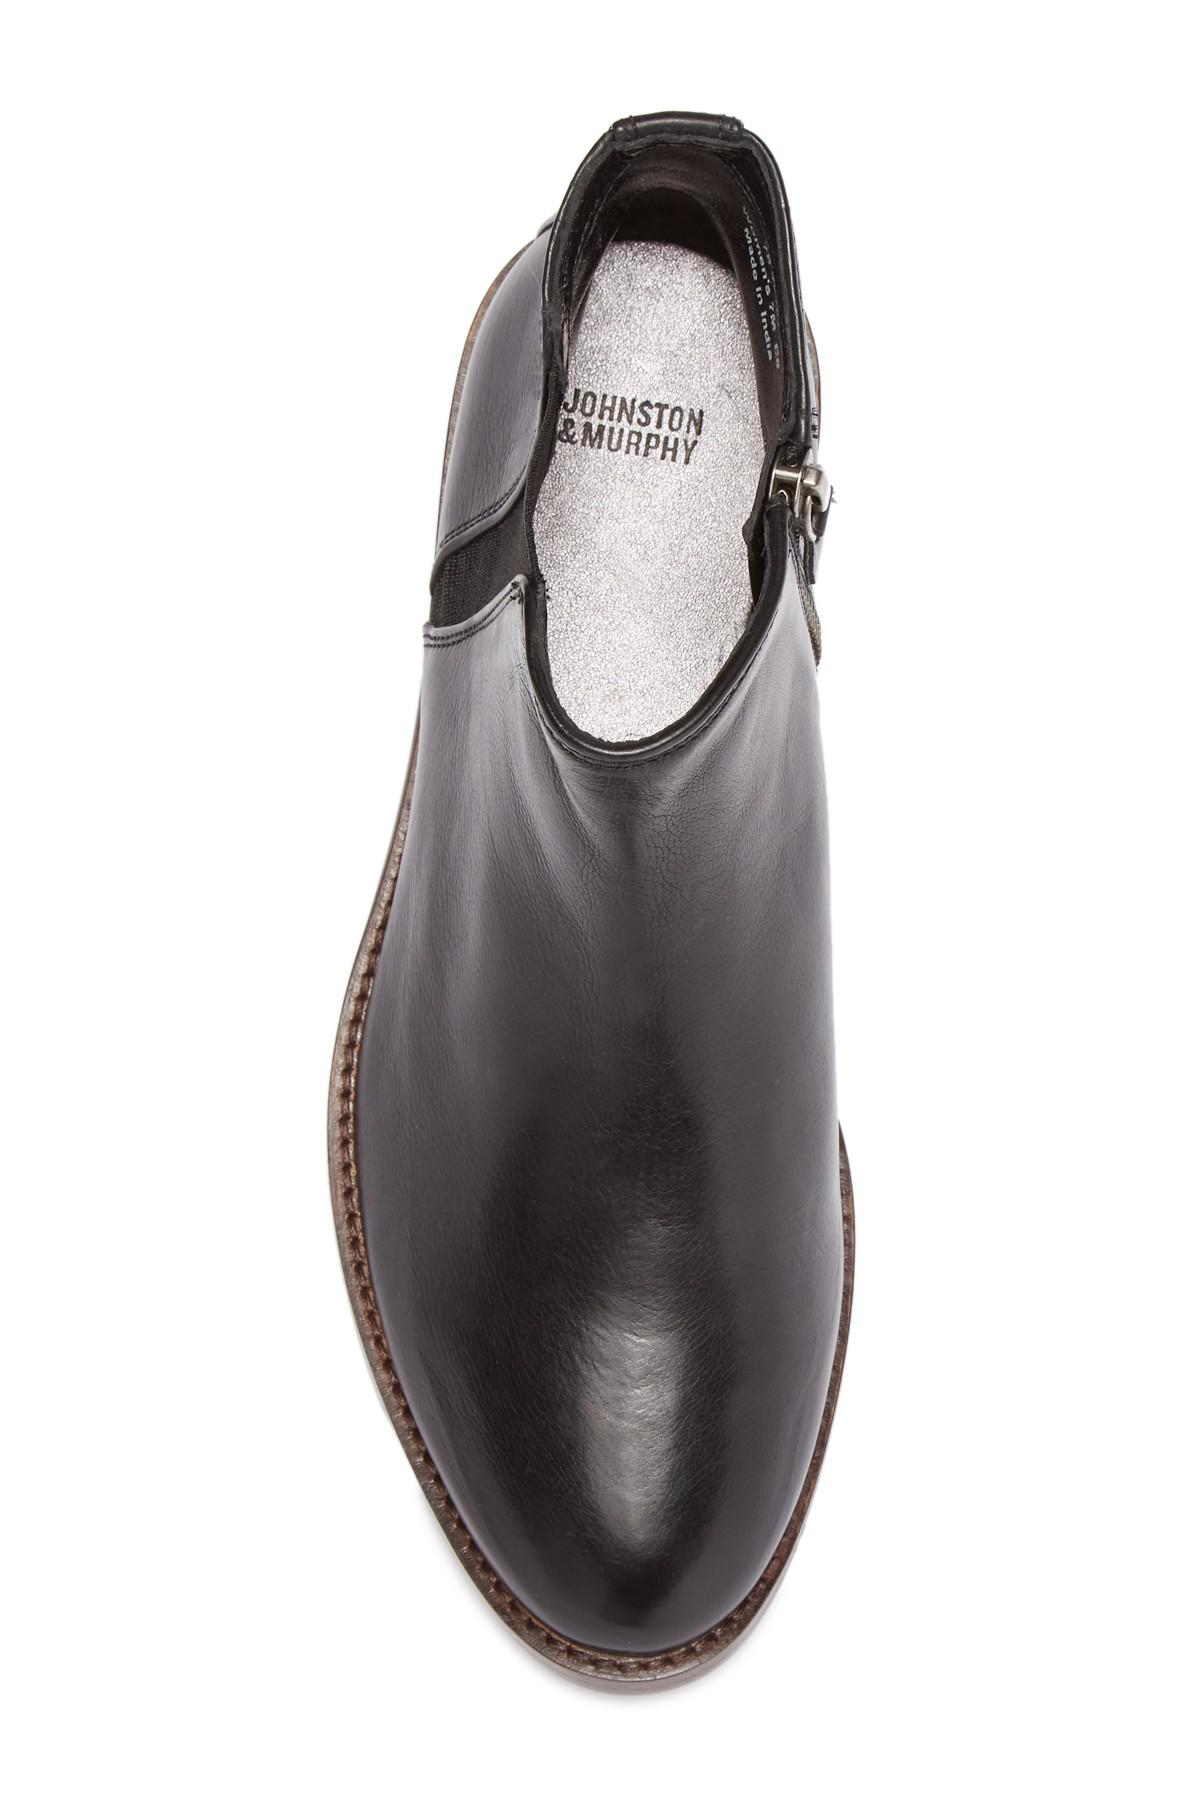 johnston and murphy leslie boot